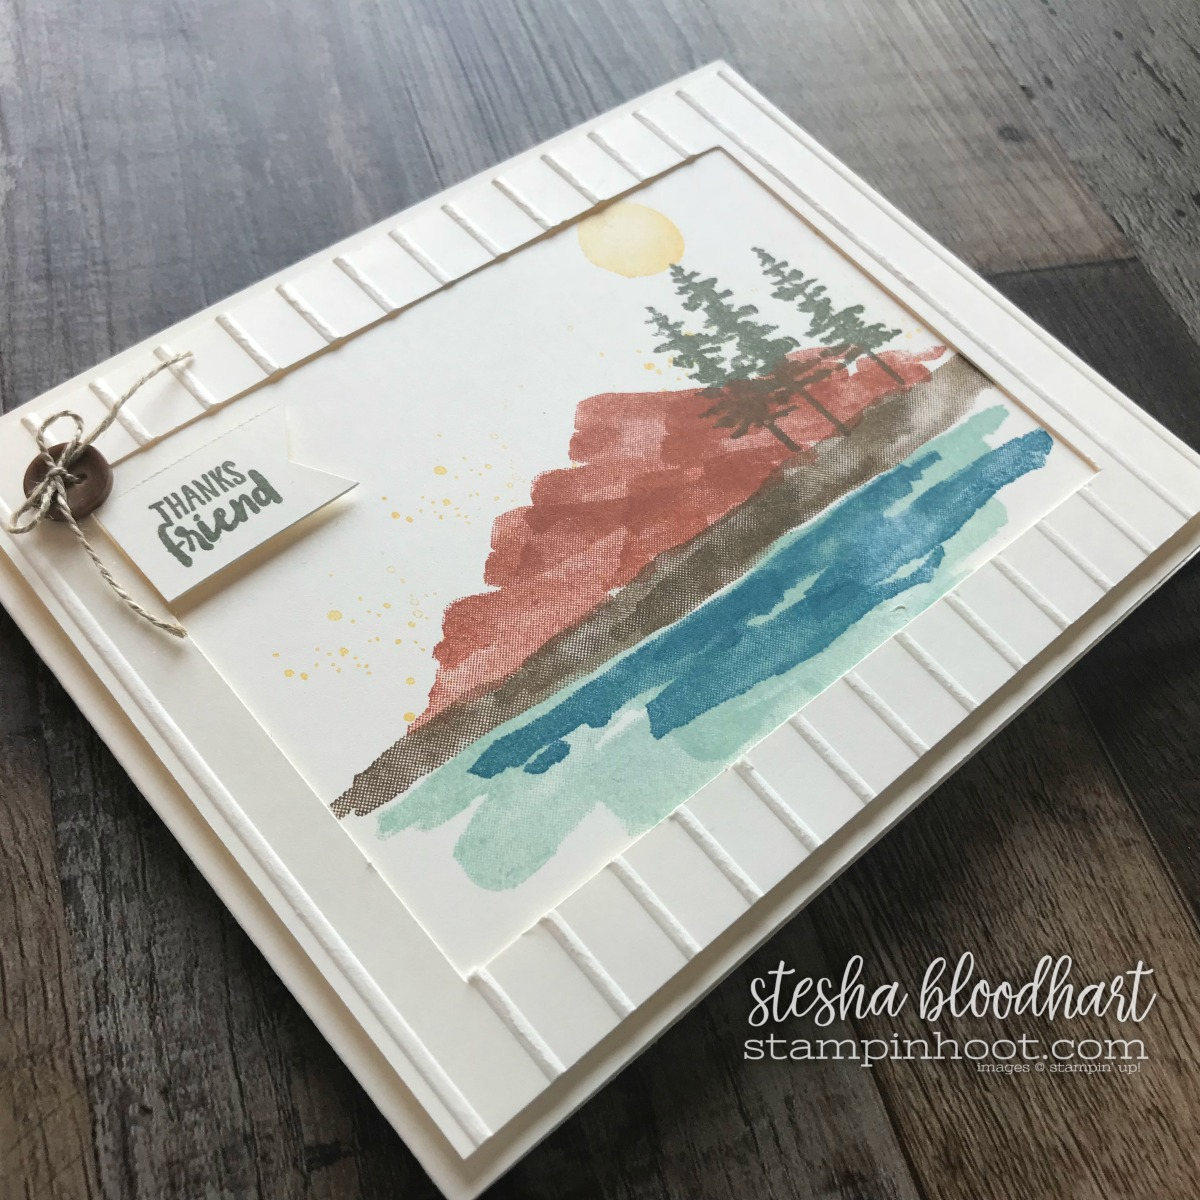 Waterfront Stamp Set by Stampin' Up! from the 2018 Occasions Catalog. Card created by Stesha Bloodhart, Stampin' Hoot! #steshabloodhart #stampinhoot